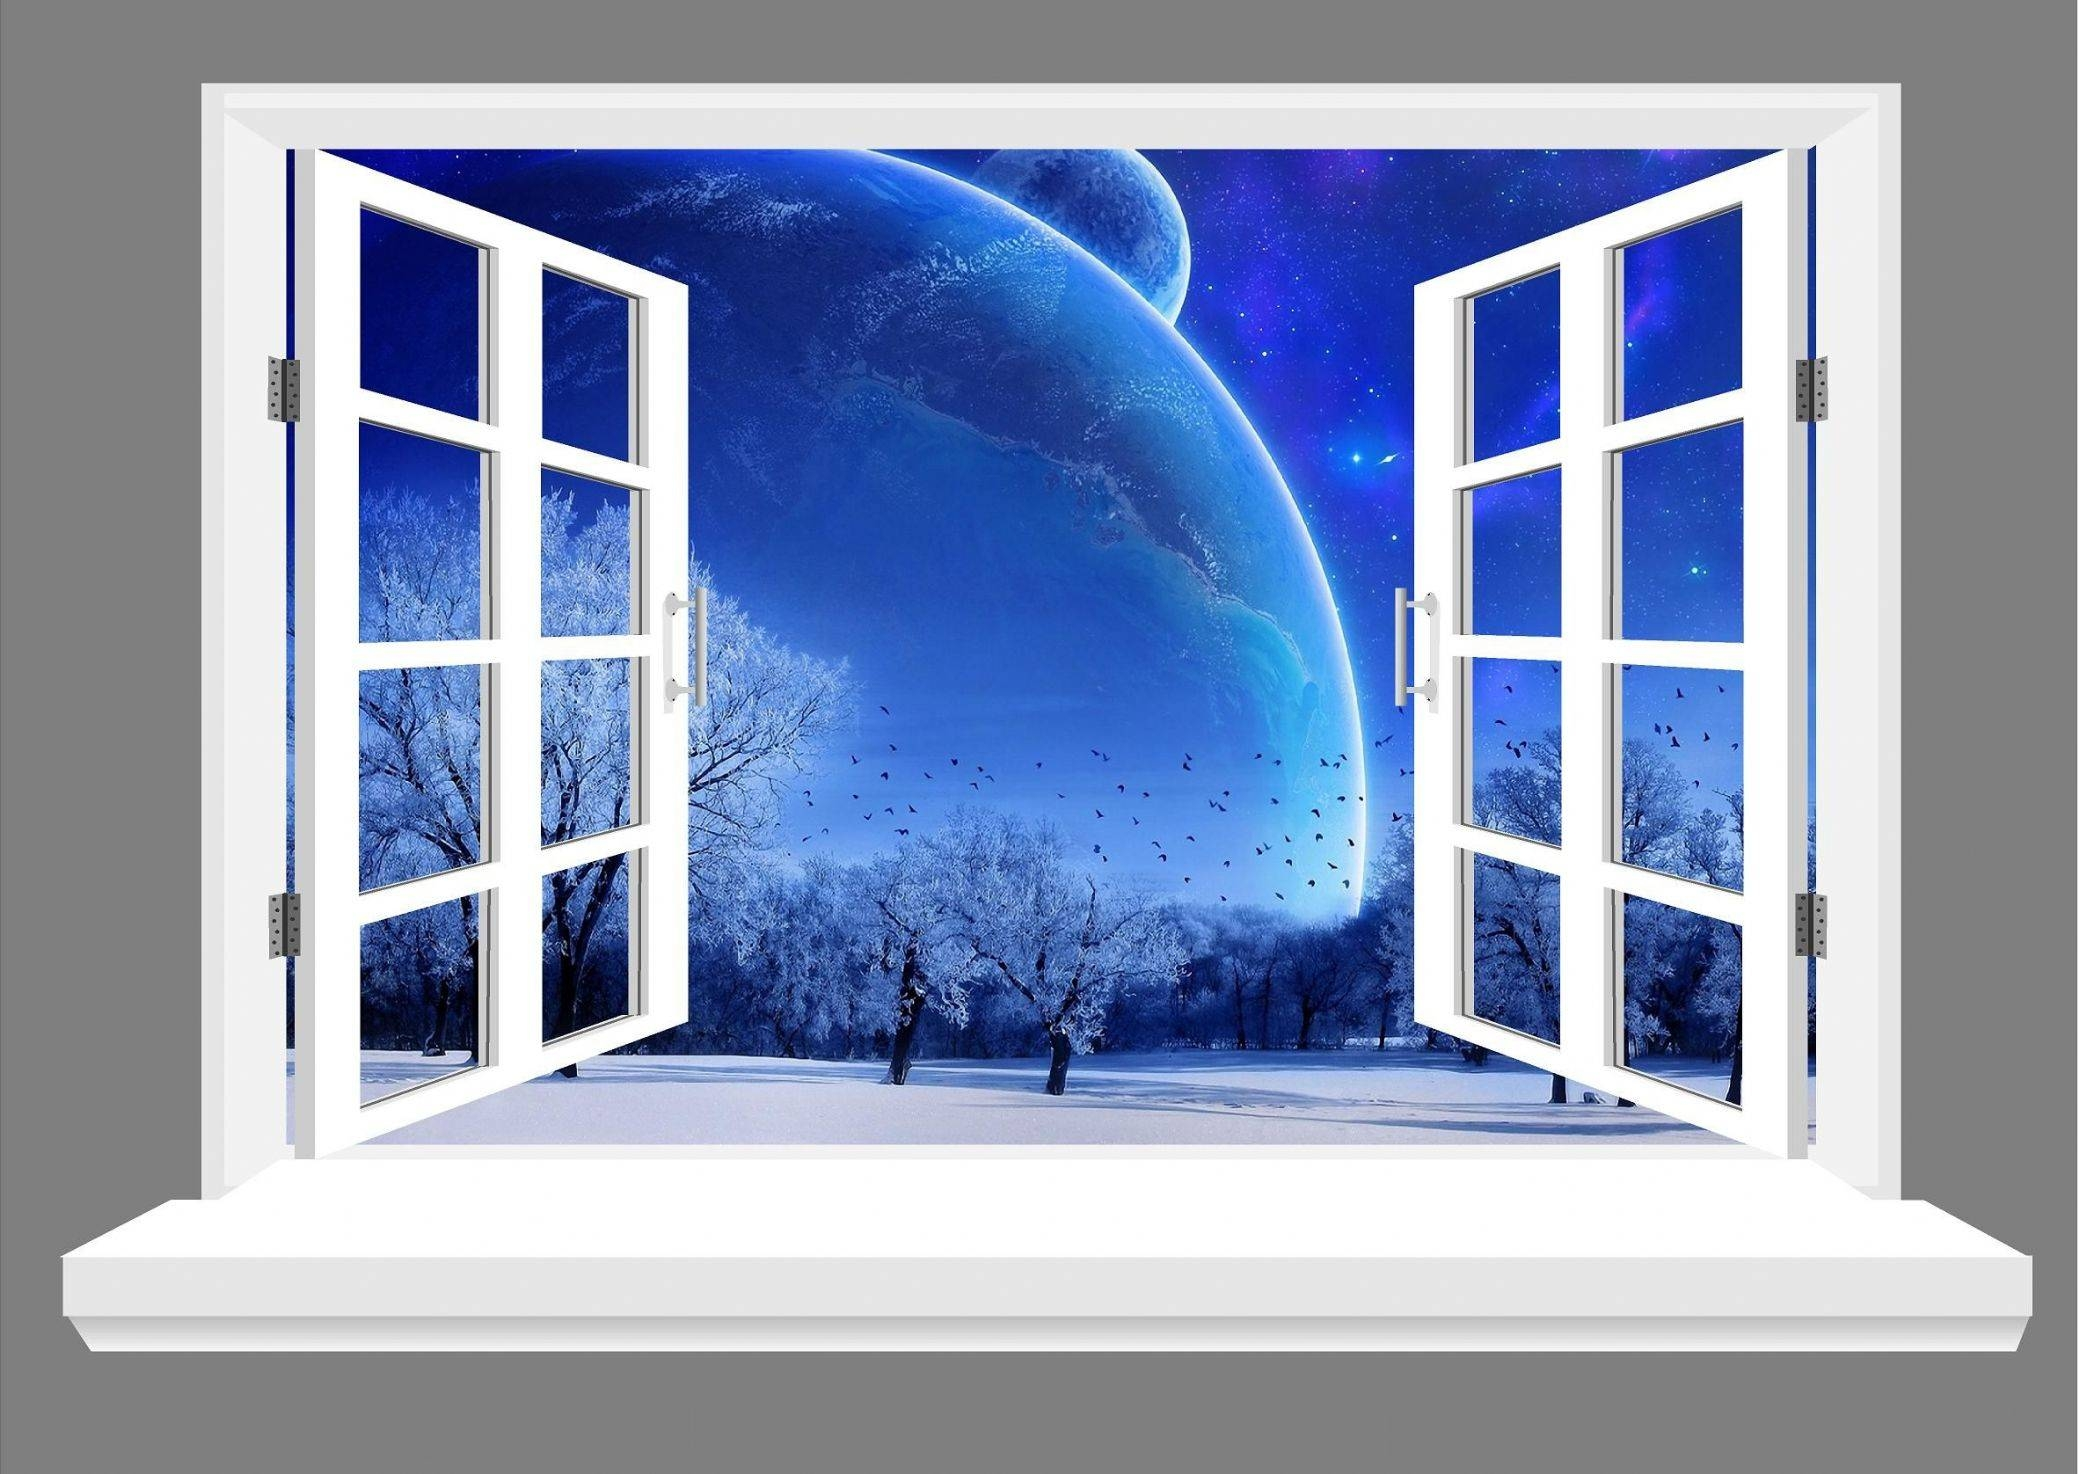 Big Beautiful Moon And Blue Sky 3d Window View Wall Art Sticker Within 2018 3d Wall Art Window (View 9 of 20)